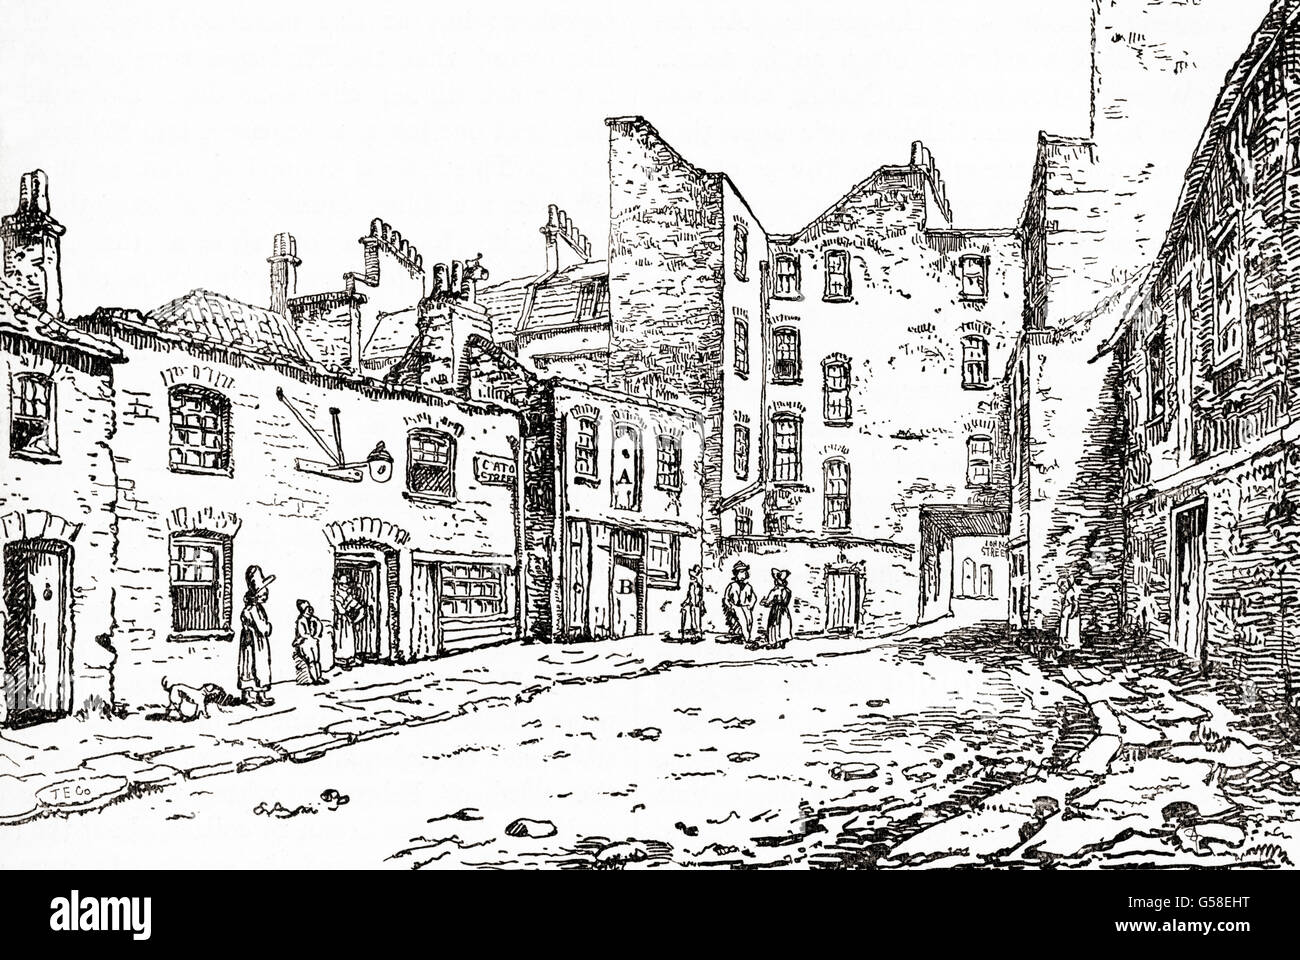 View of Cato Street, London, England in the 19th century showing the stable in which the conspirators were captured. - Stock Image